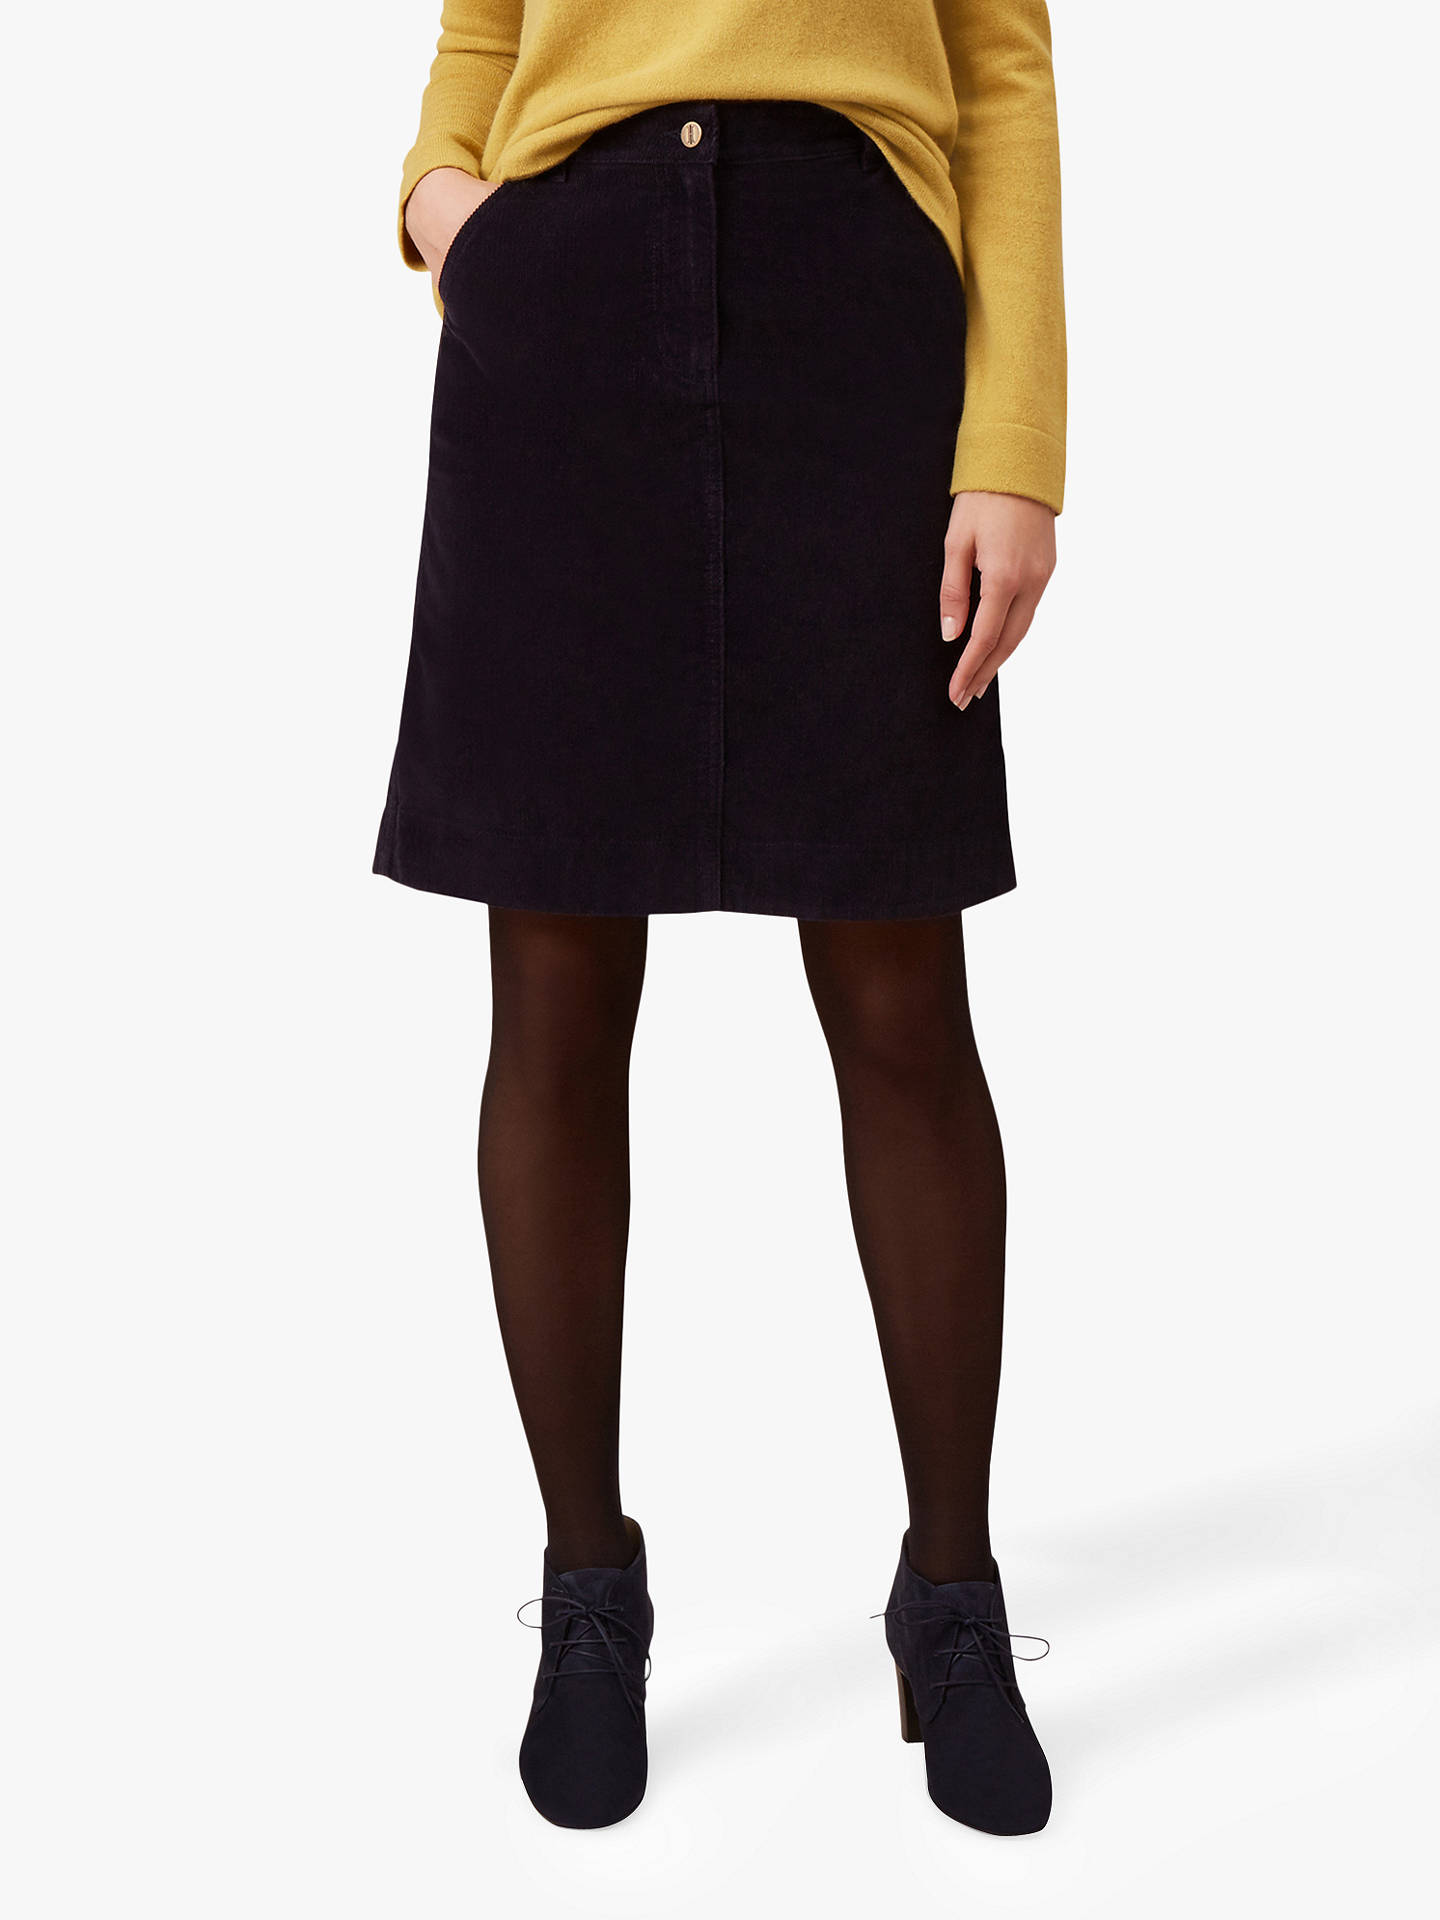 fb127cfc6ccf Buy Hobbs Bronte Cord Skirt, Navy, 6 Online at johnlewis.com ...